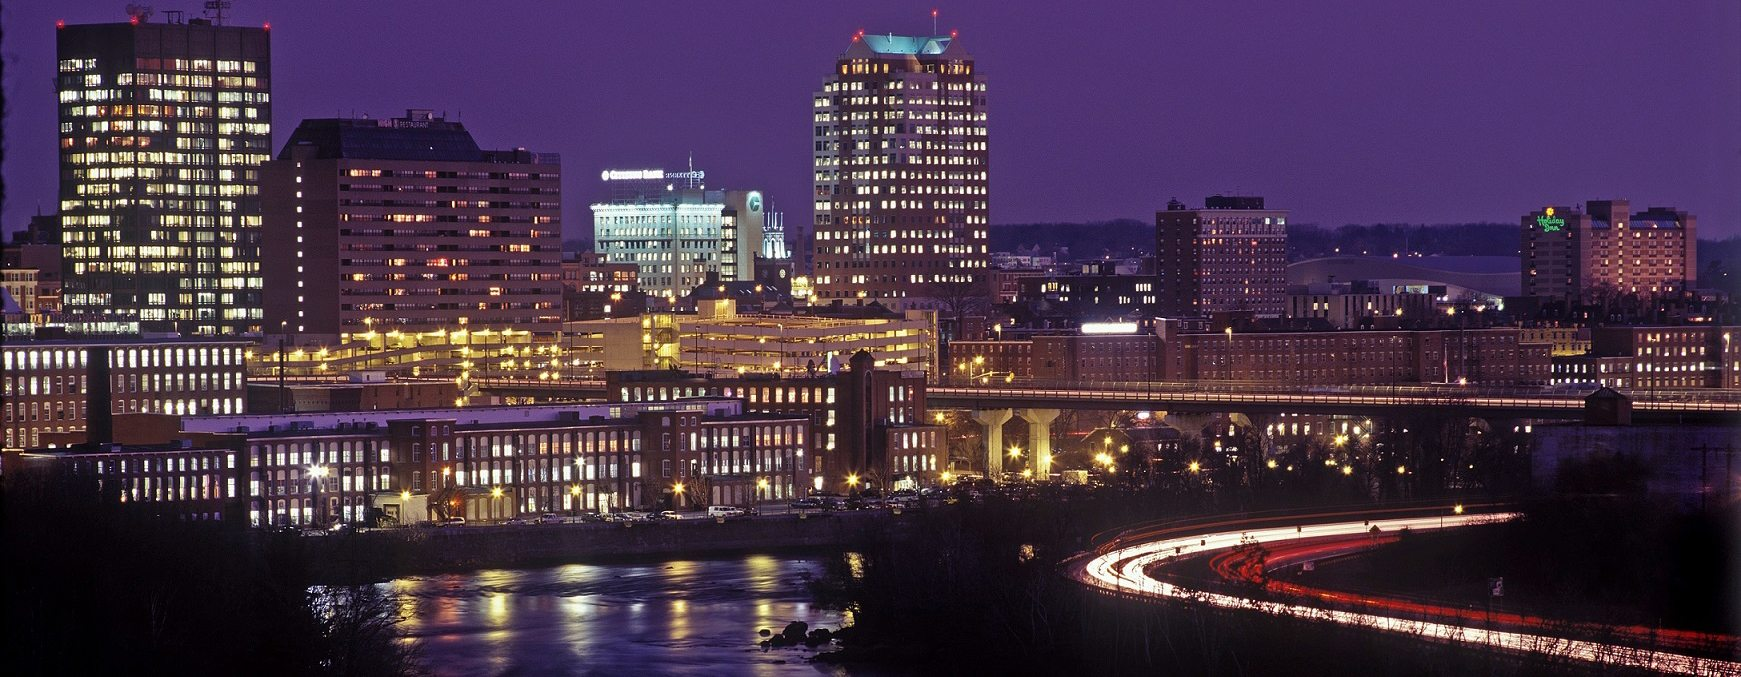 Manchester NH City Skyline courtesy of https://www.nheconomy.com/